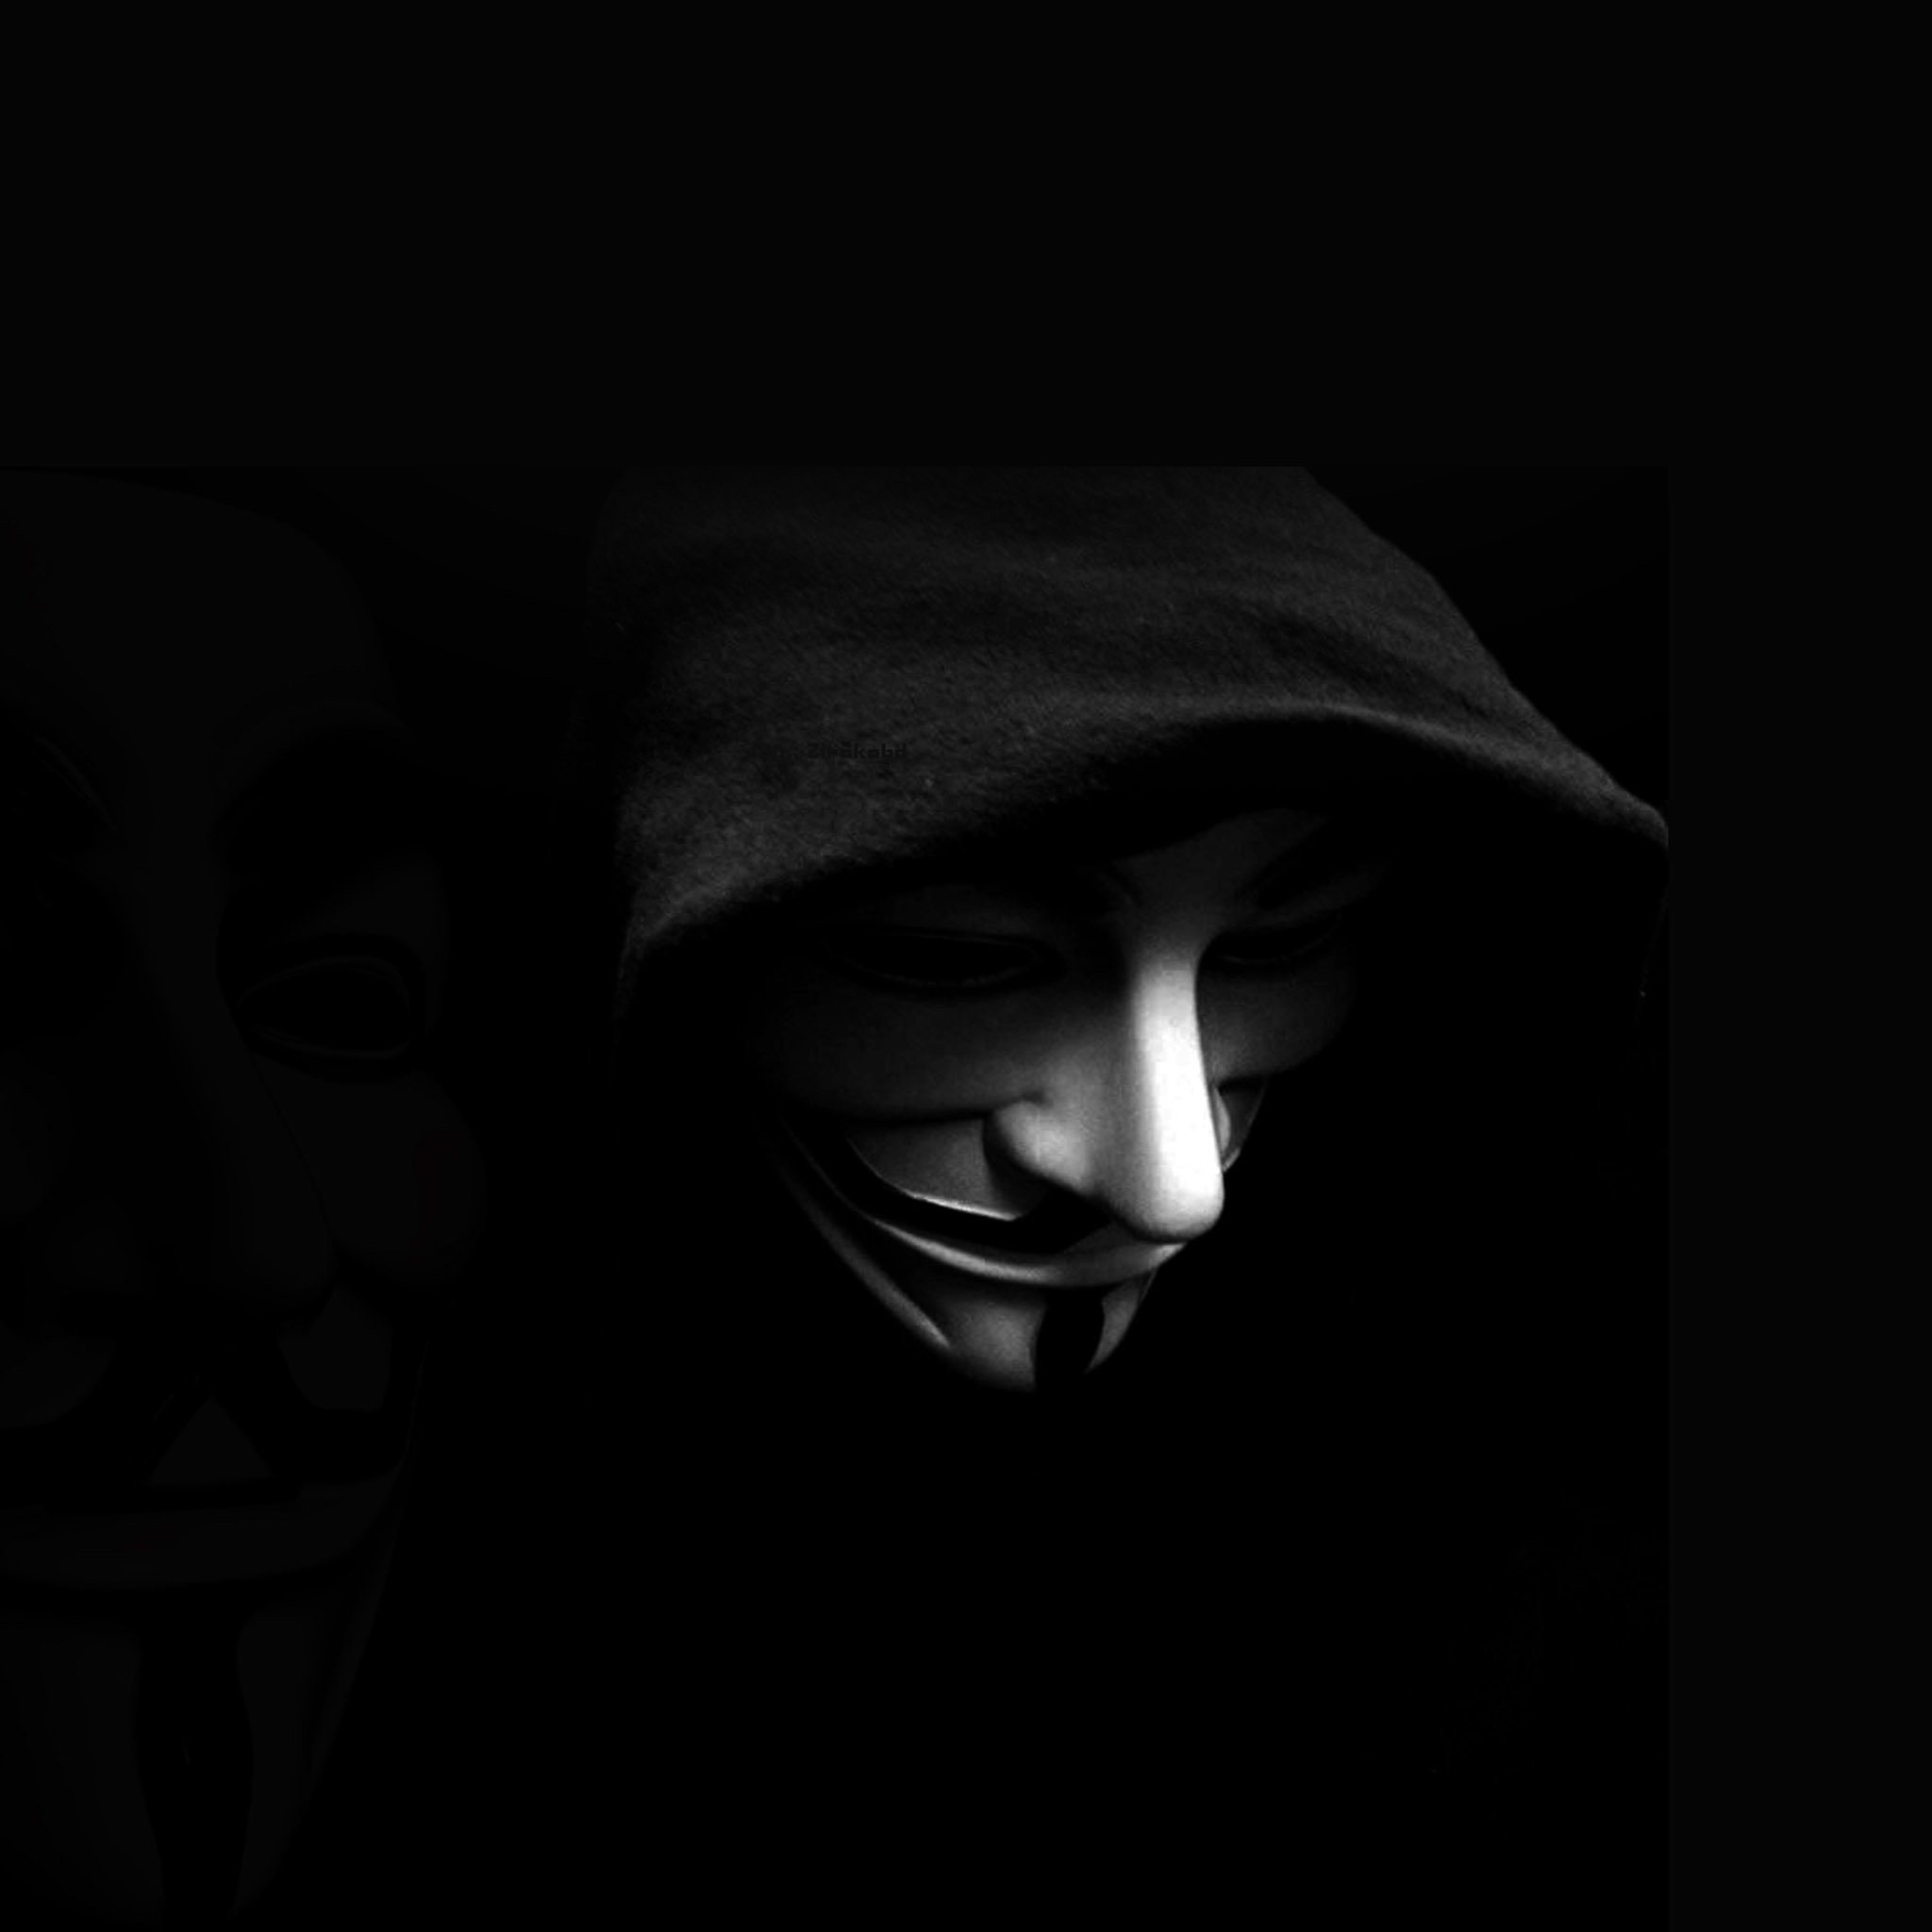 trends for hacker mask wallpaper 4k hd